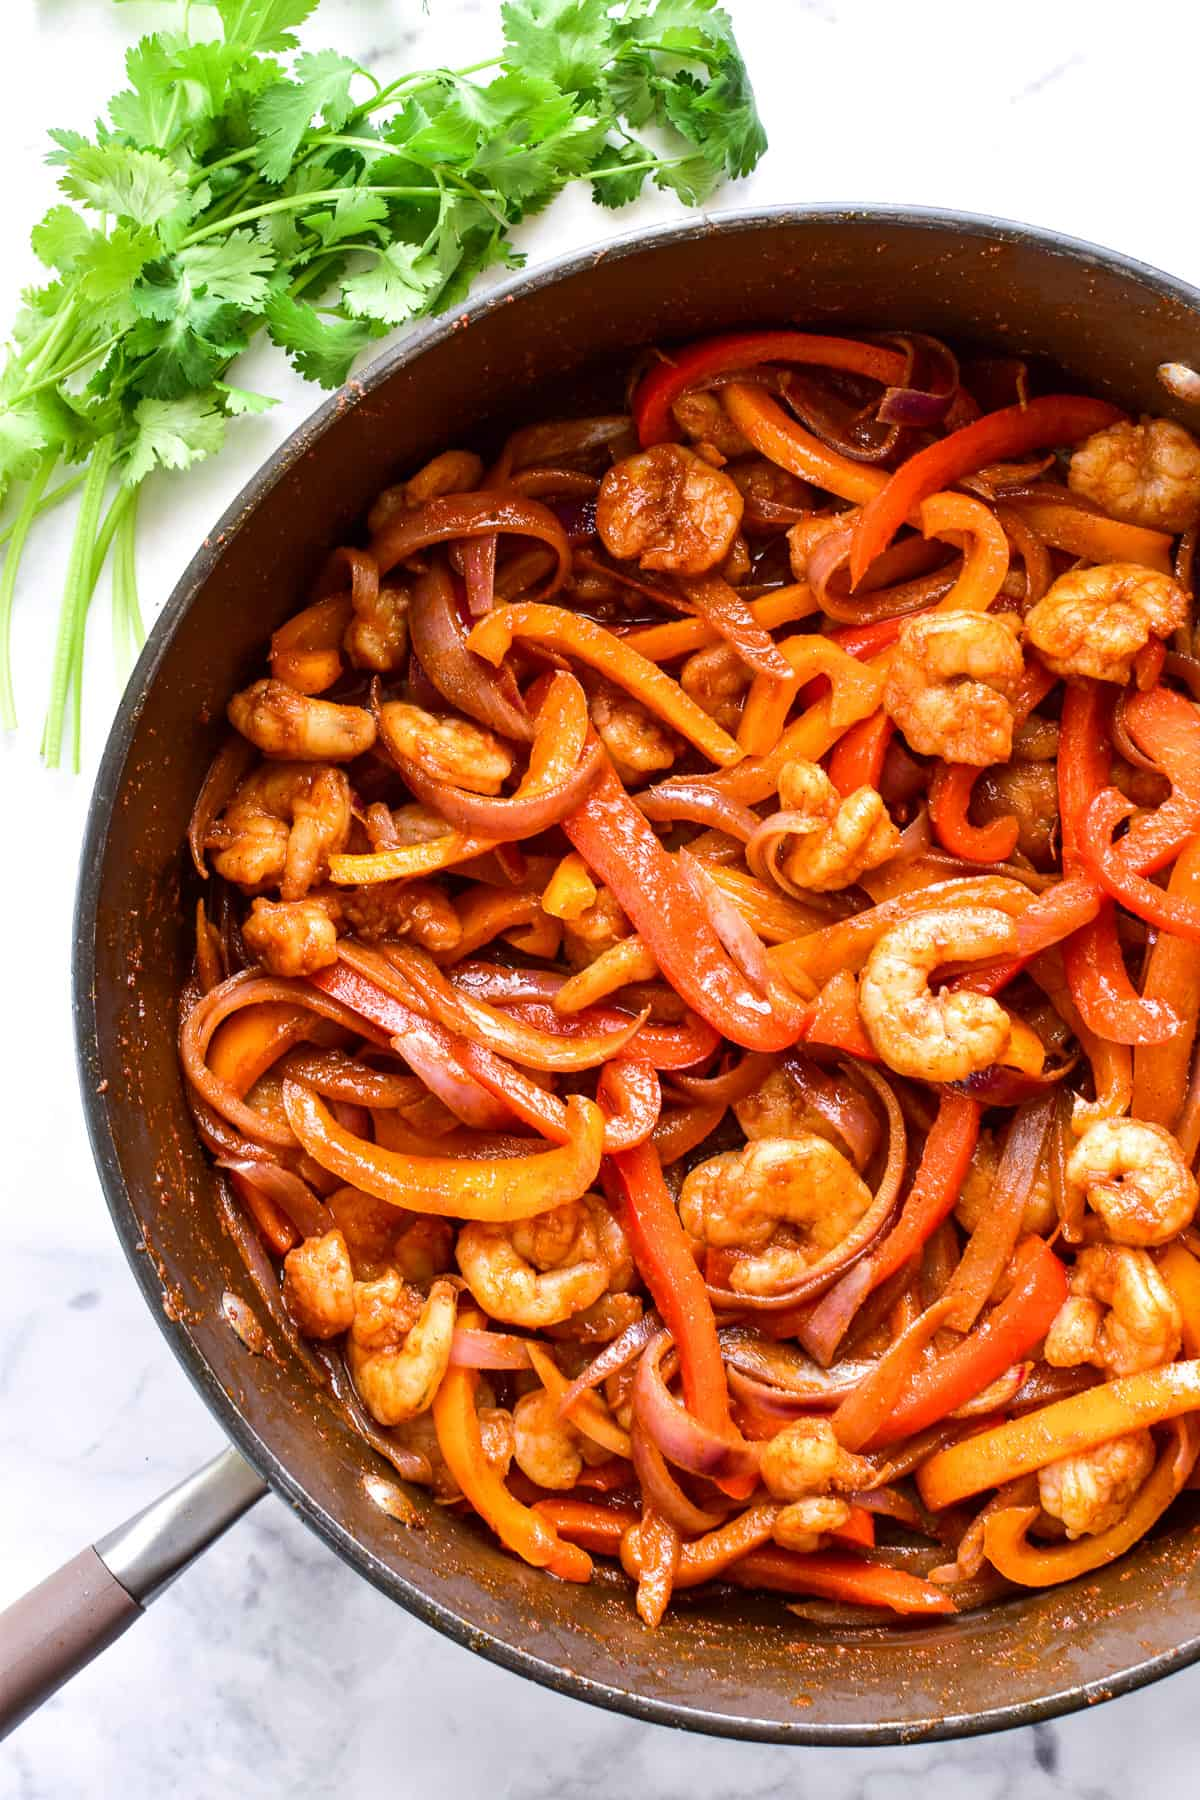 Fajita peppers, onions, and shrimp in a skillet with seasoning